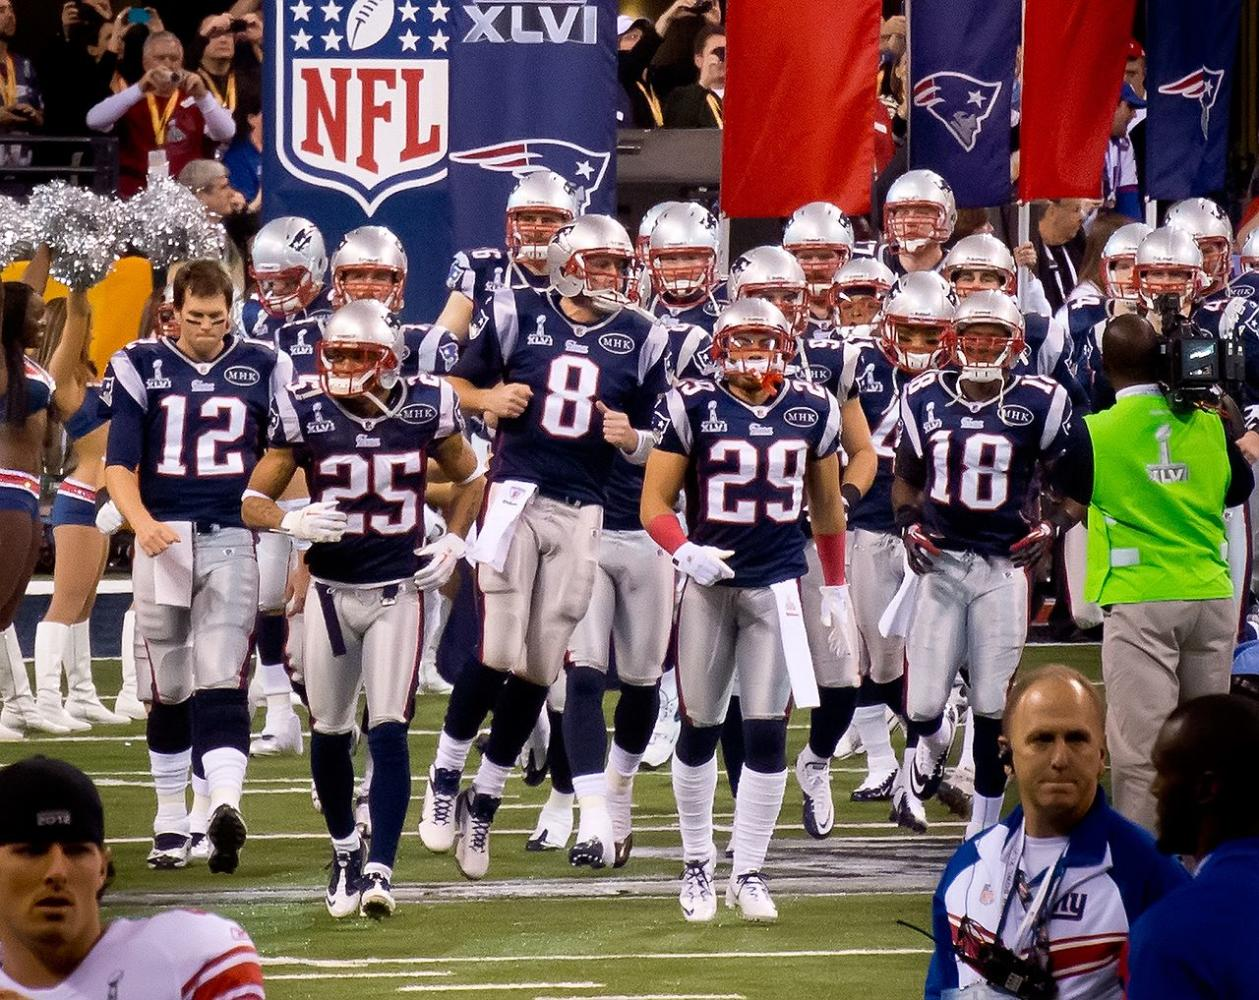 Have the Patriots become more popular over the years?